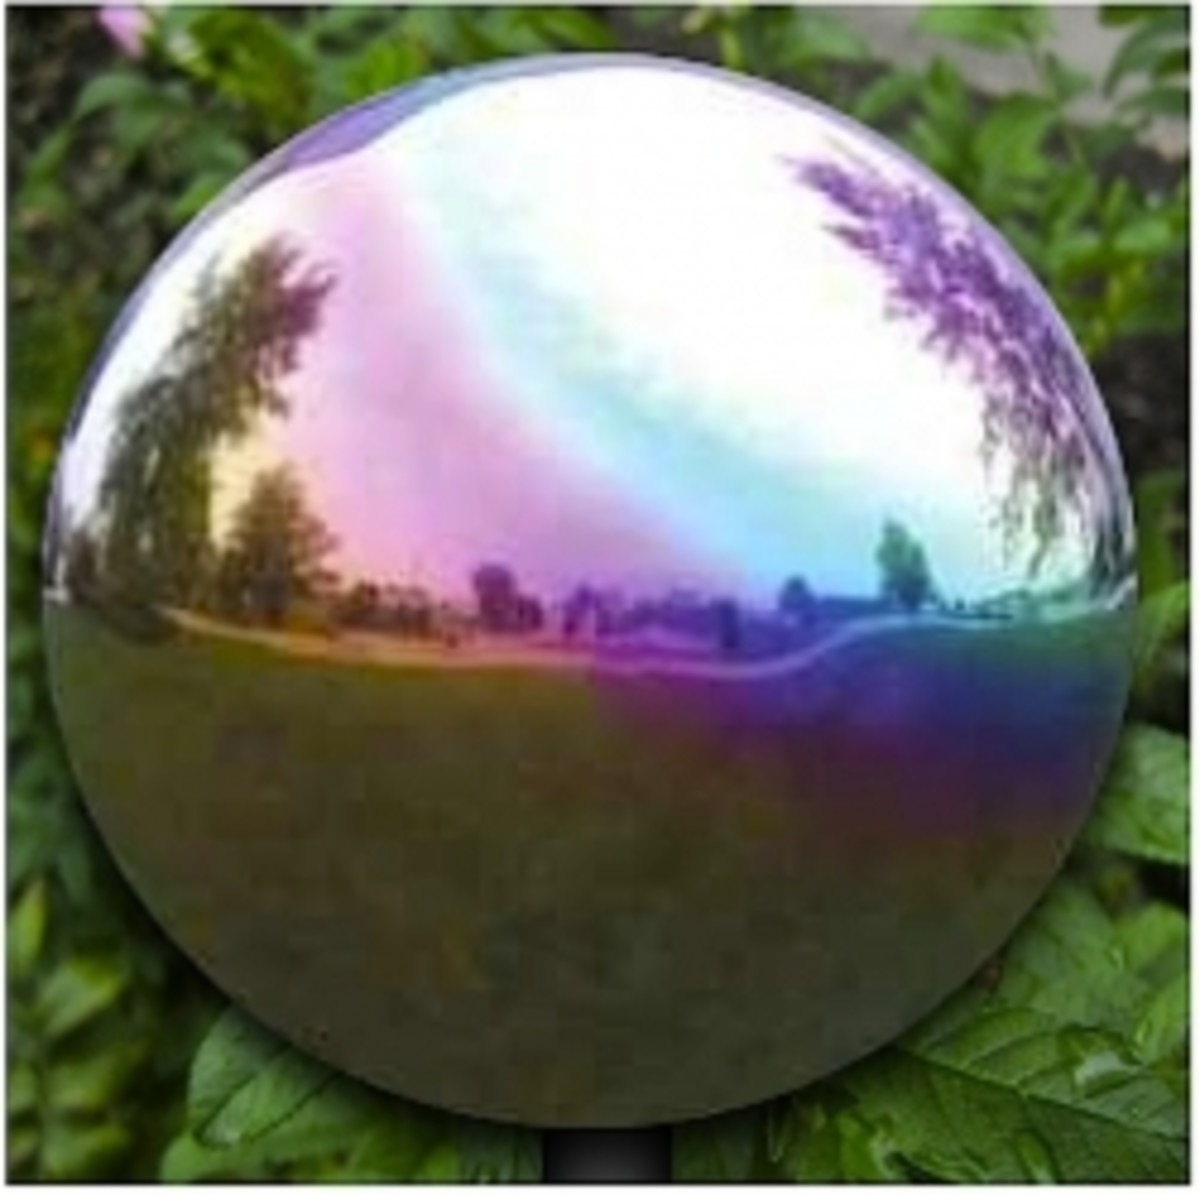 Featured here: 12-Inch Rainbow Stainless Steel Gazing Globe available at Amazon